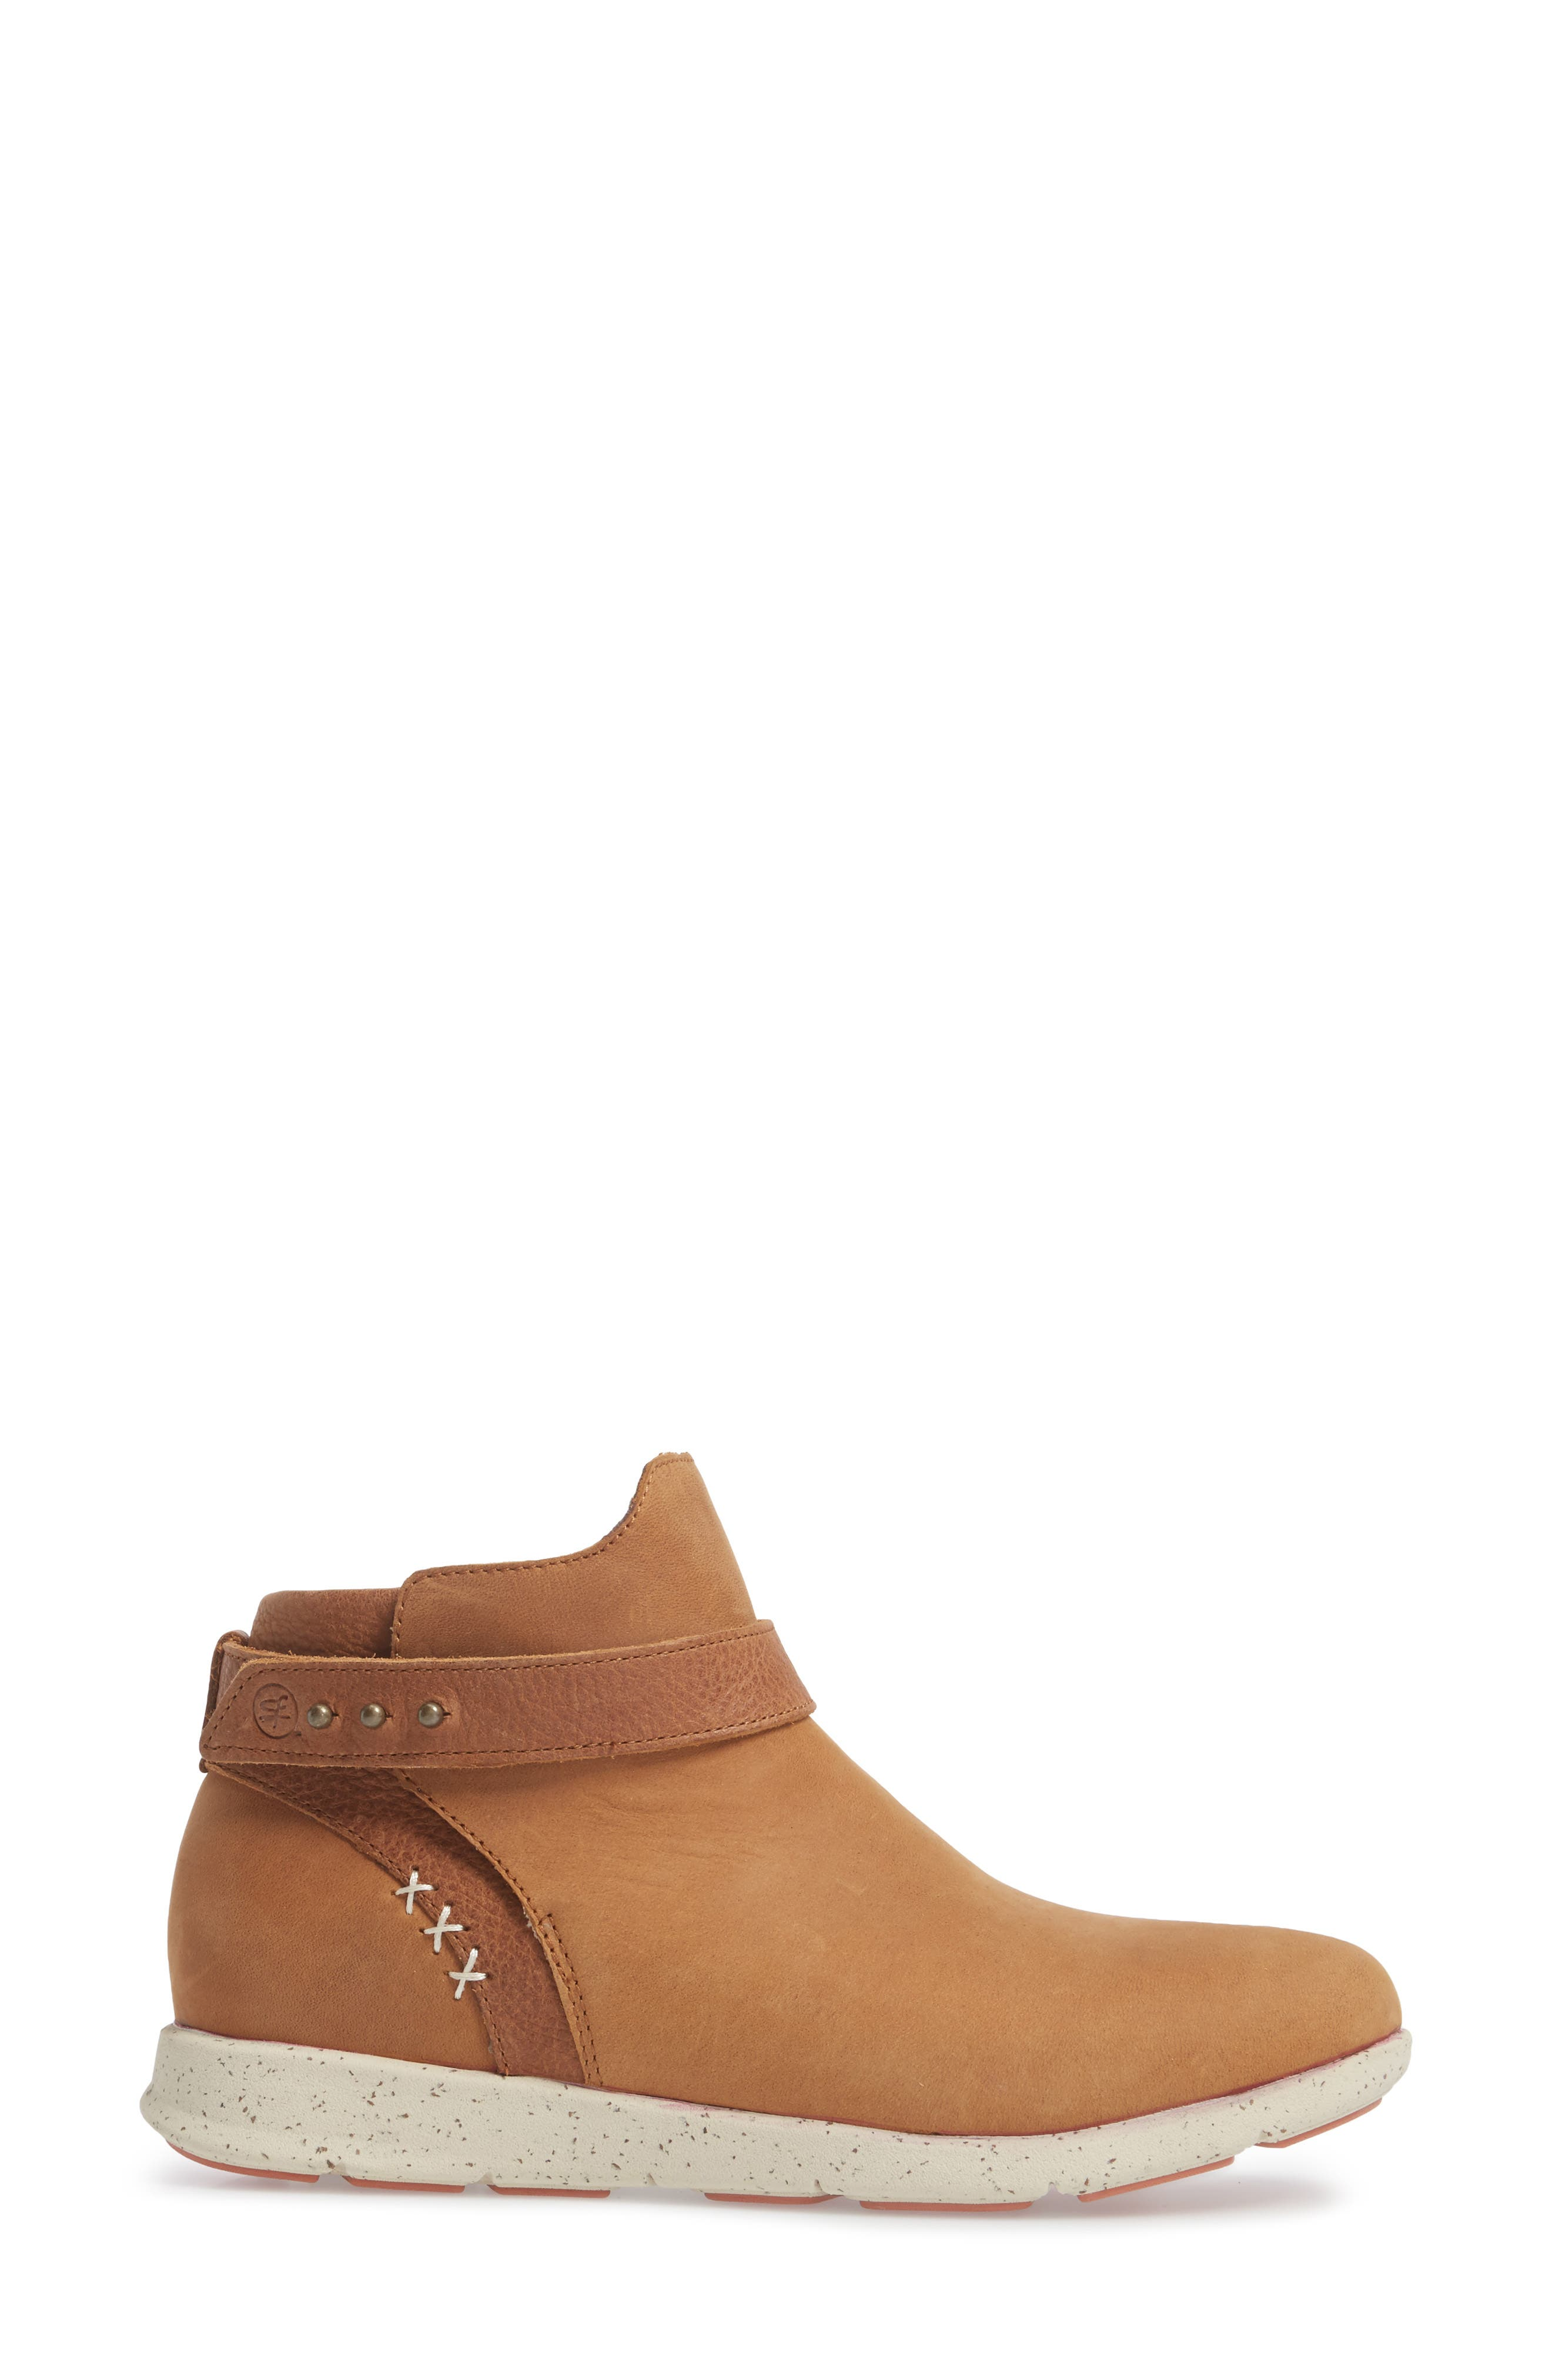 Ash Bootie,                             Alternate thumbnail 3, color,                             BROWN LEATHER